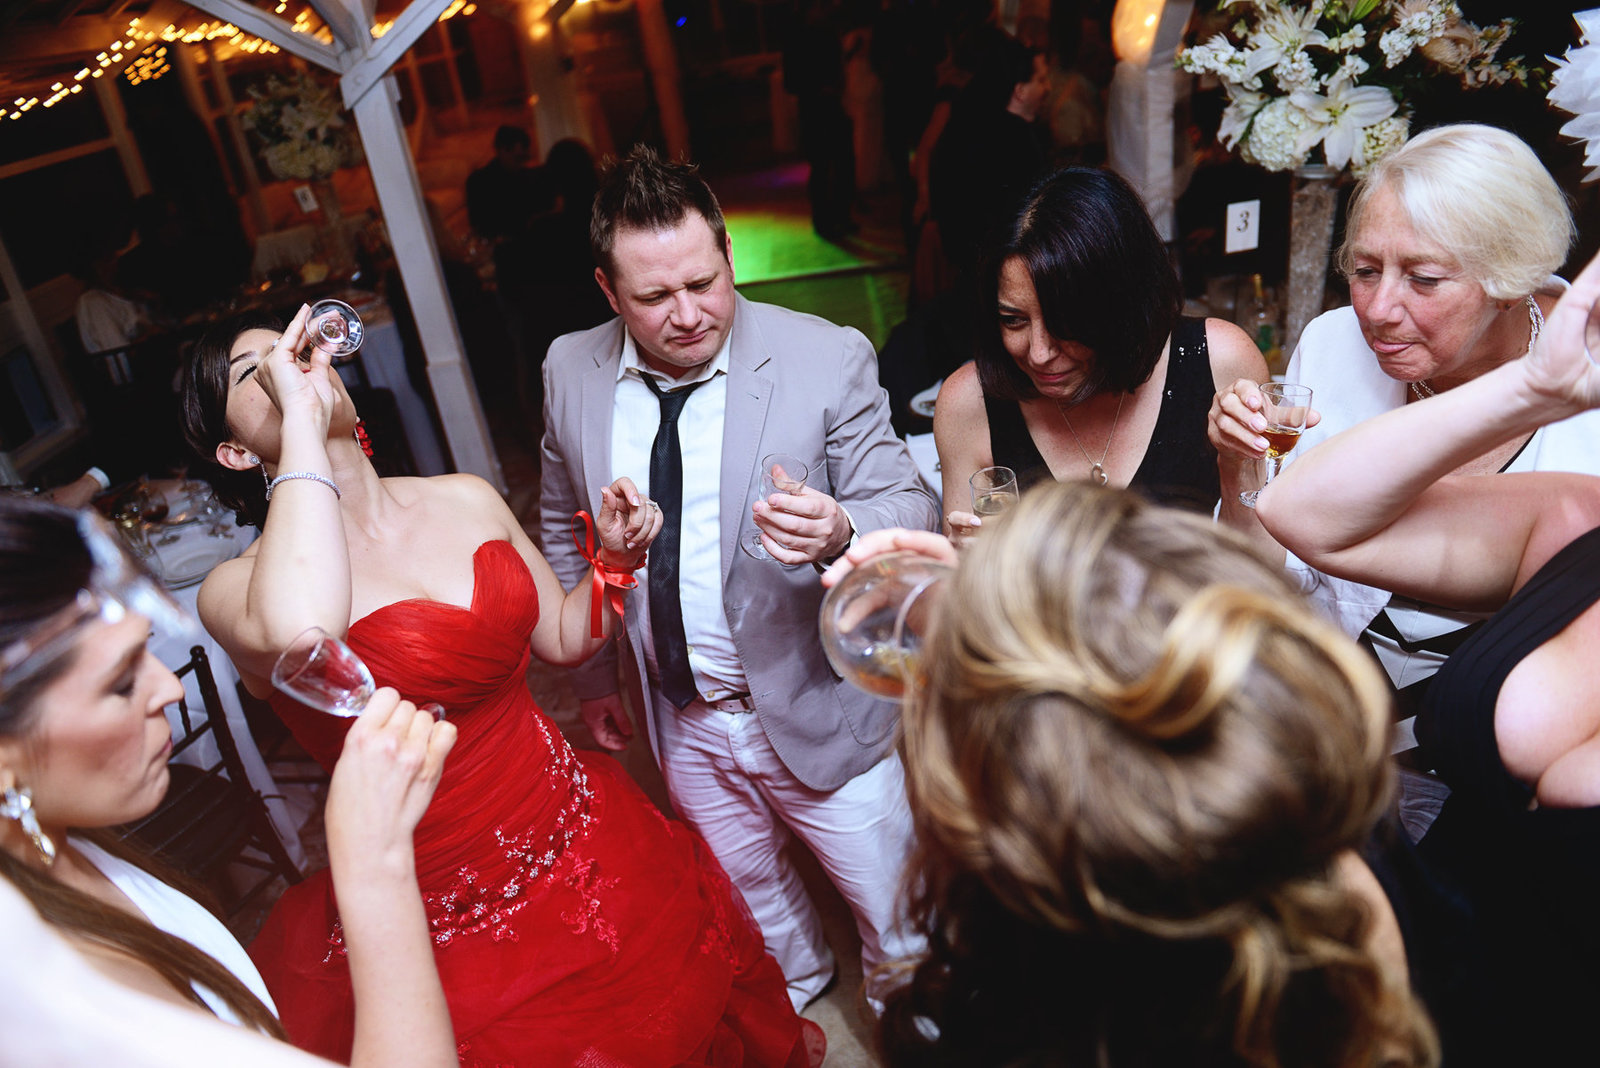 malibu wedding photographer photos celebrity wedding photographer bryan newfield photography ruth mike 50